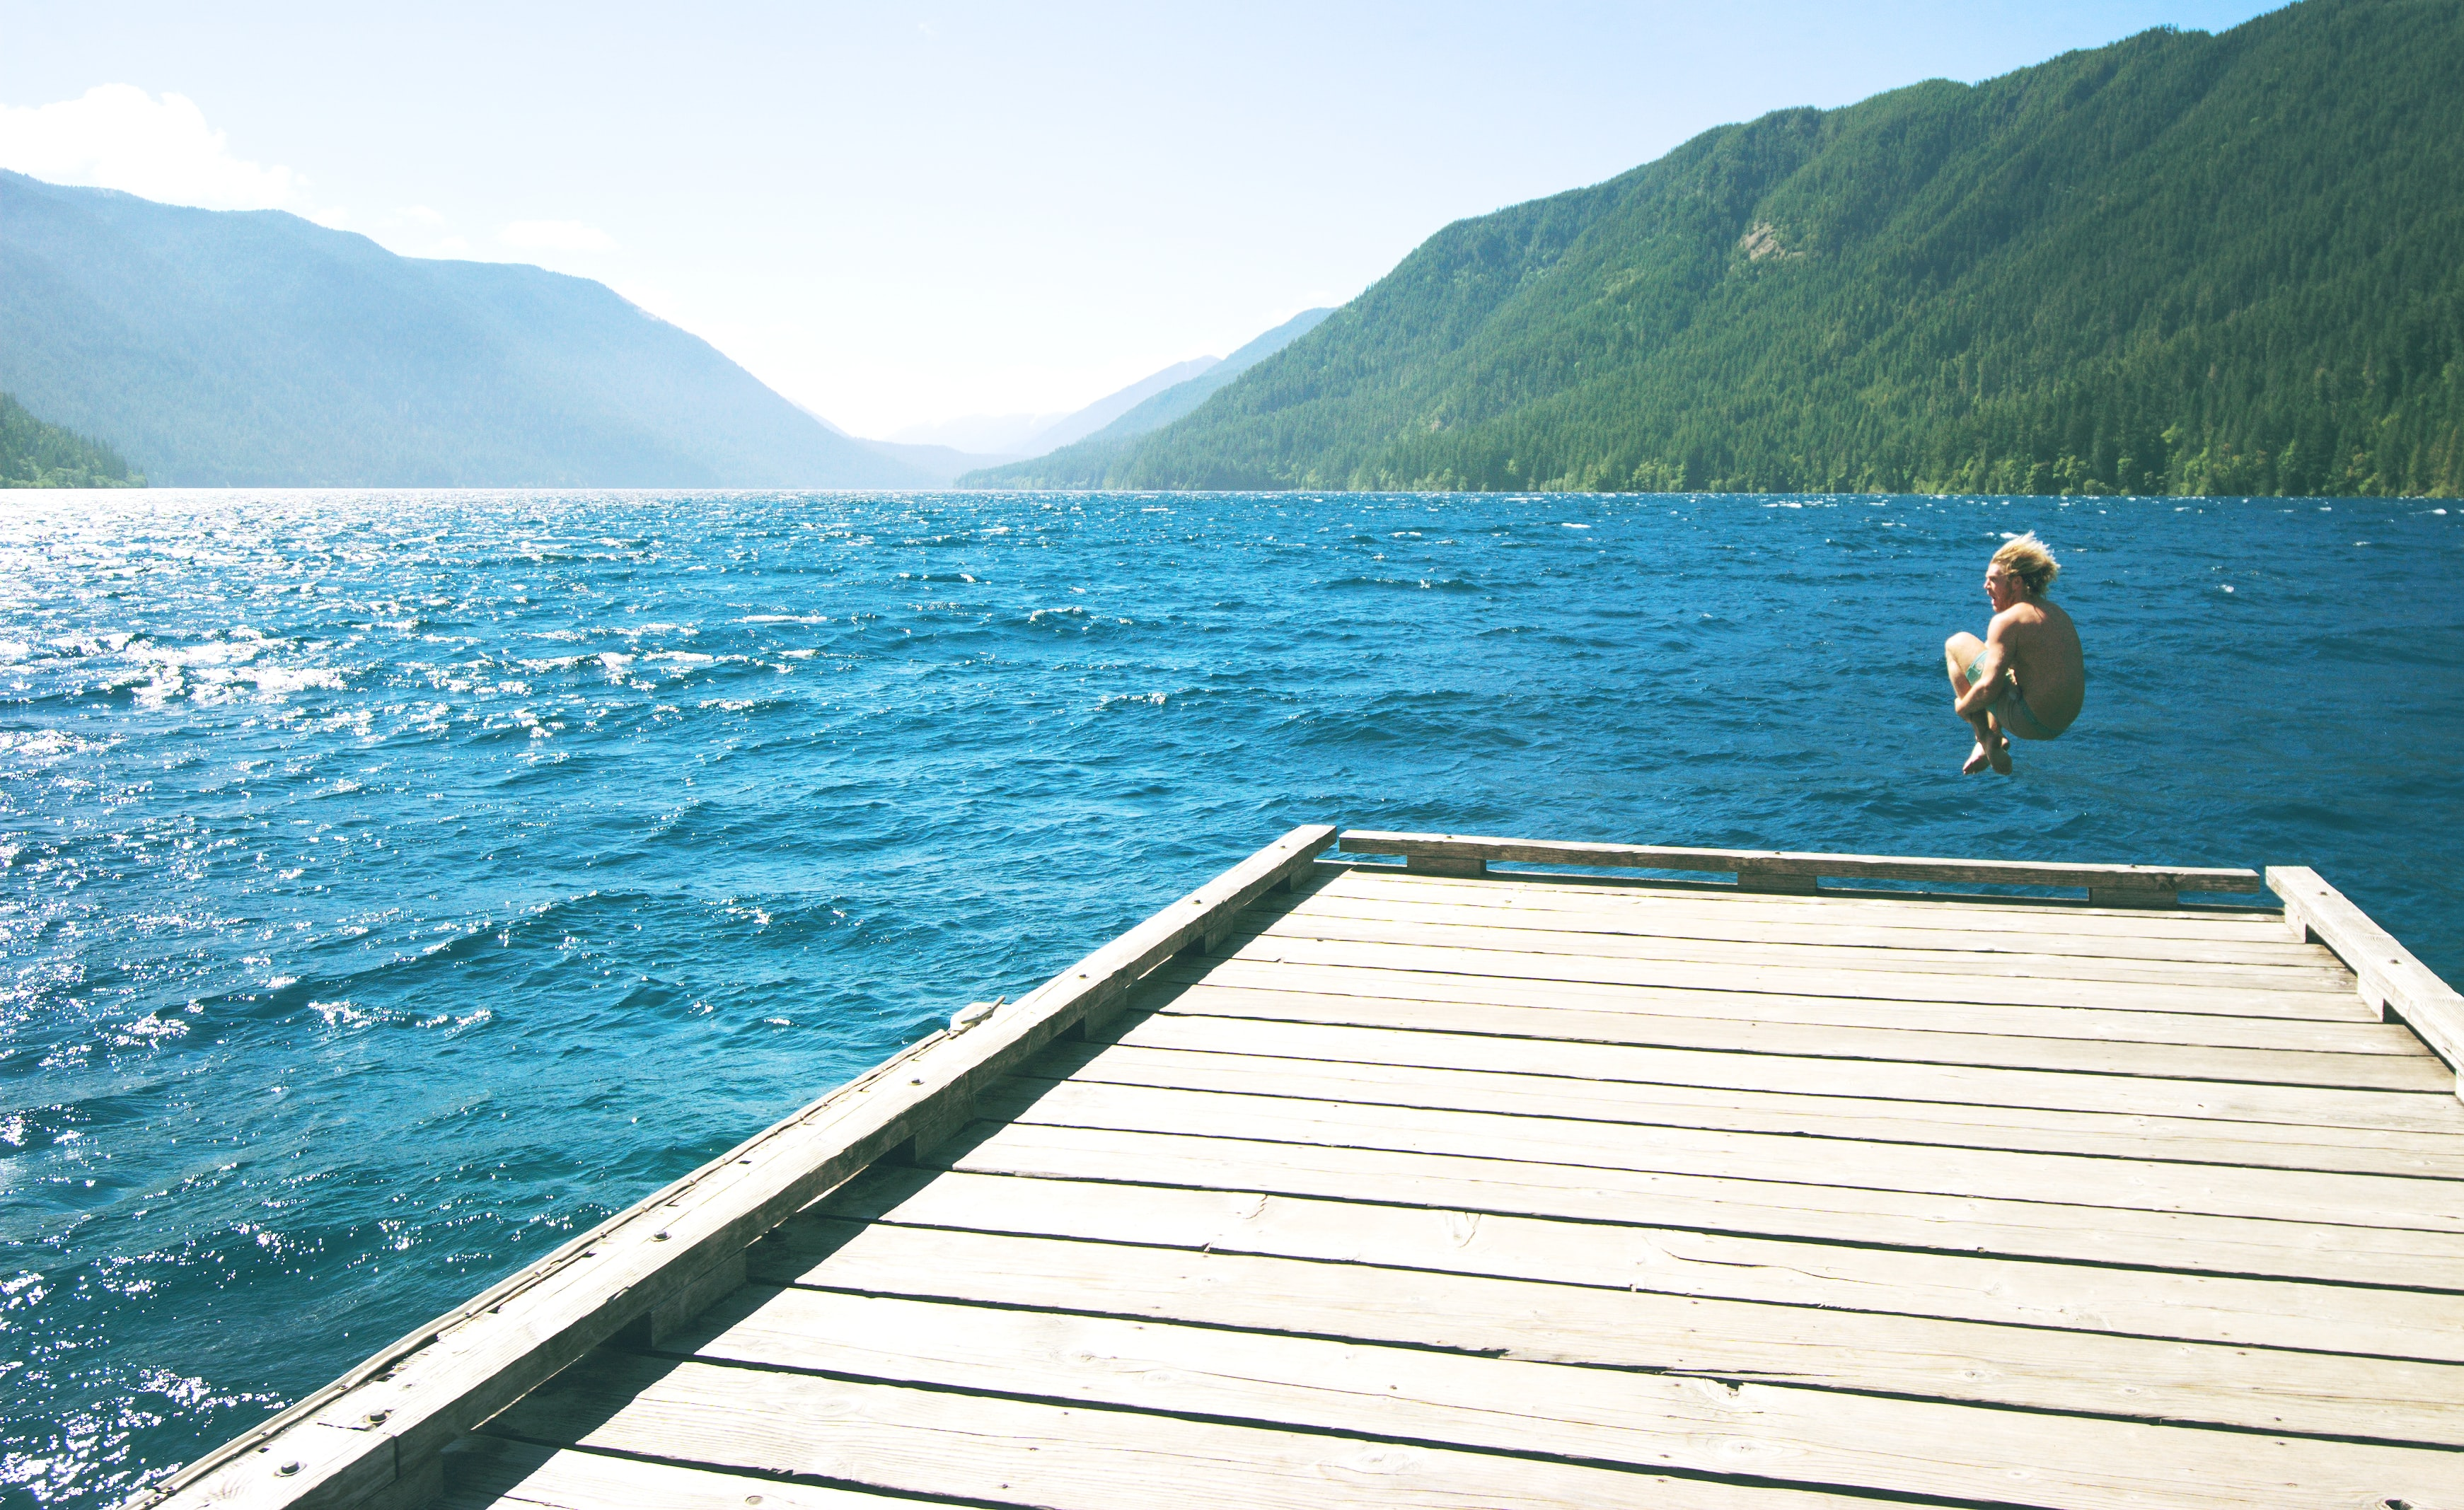 topless person jumping towards water from white wooden dock